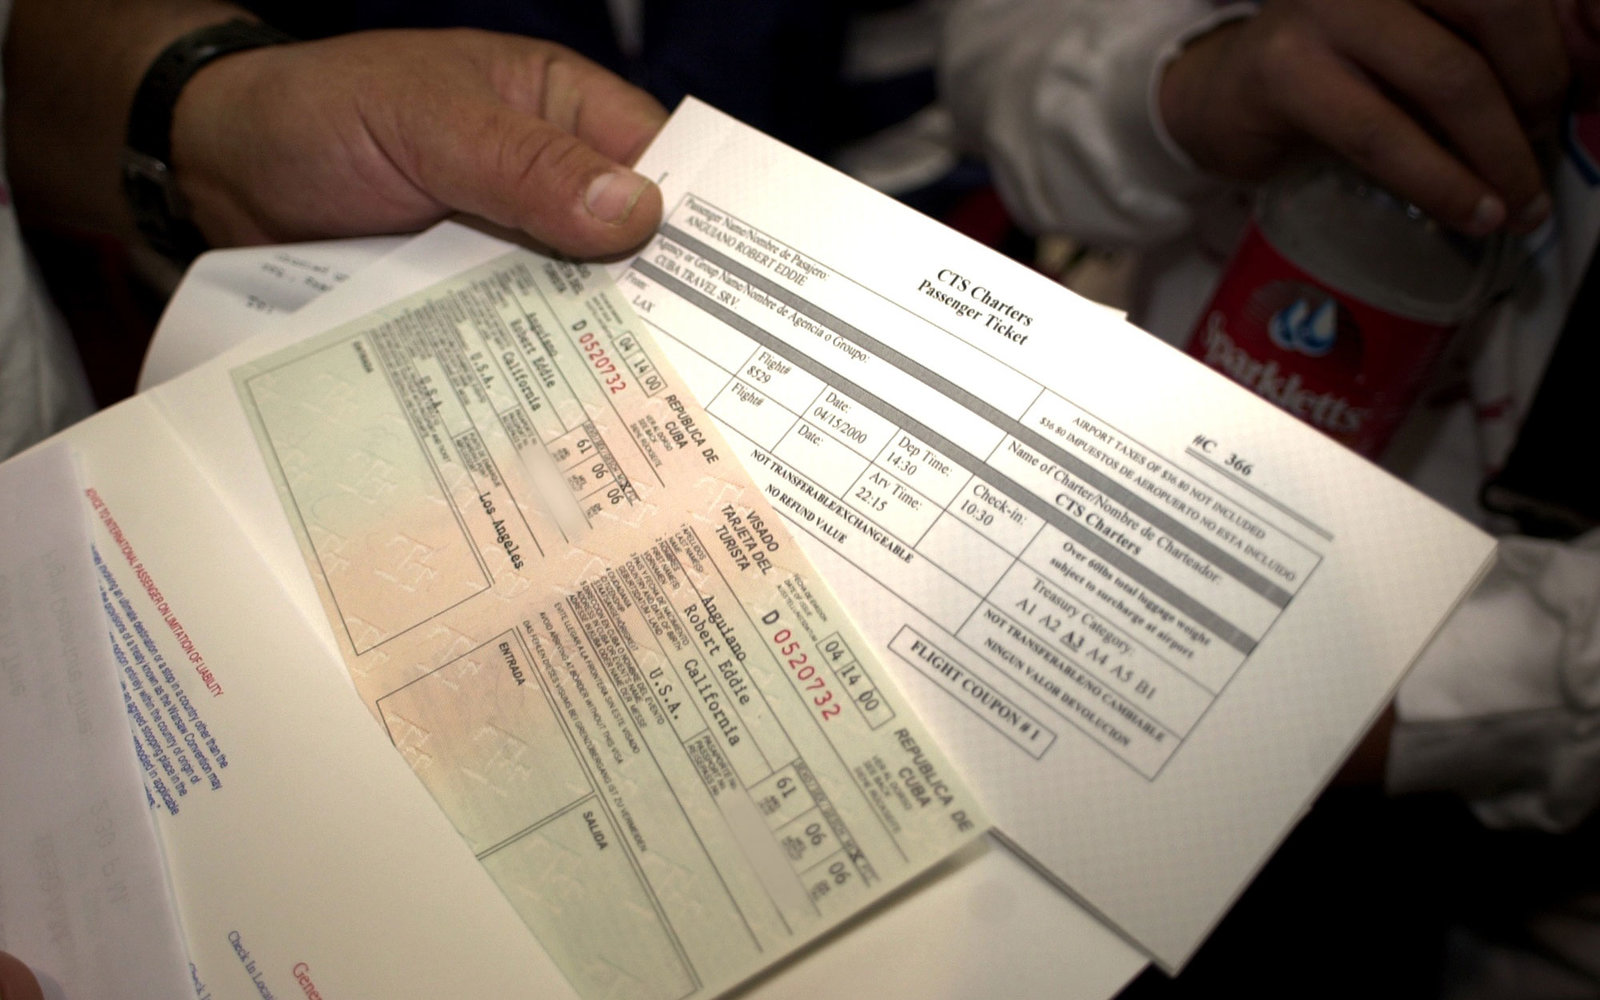 N367736 03: A Passenger Holds His Visa And Tickets To Board Flight 8529 From Los Angeles To Havana, Cuba At Los Angeles International Airport April 15, 2000. Taca Airlines Will Provide The First Regular Service To Havana From Los Angeles In Forty Years.